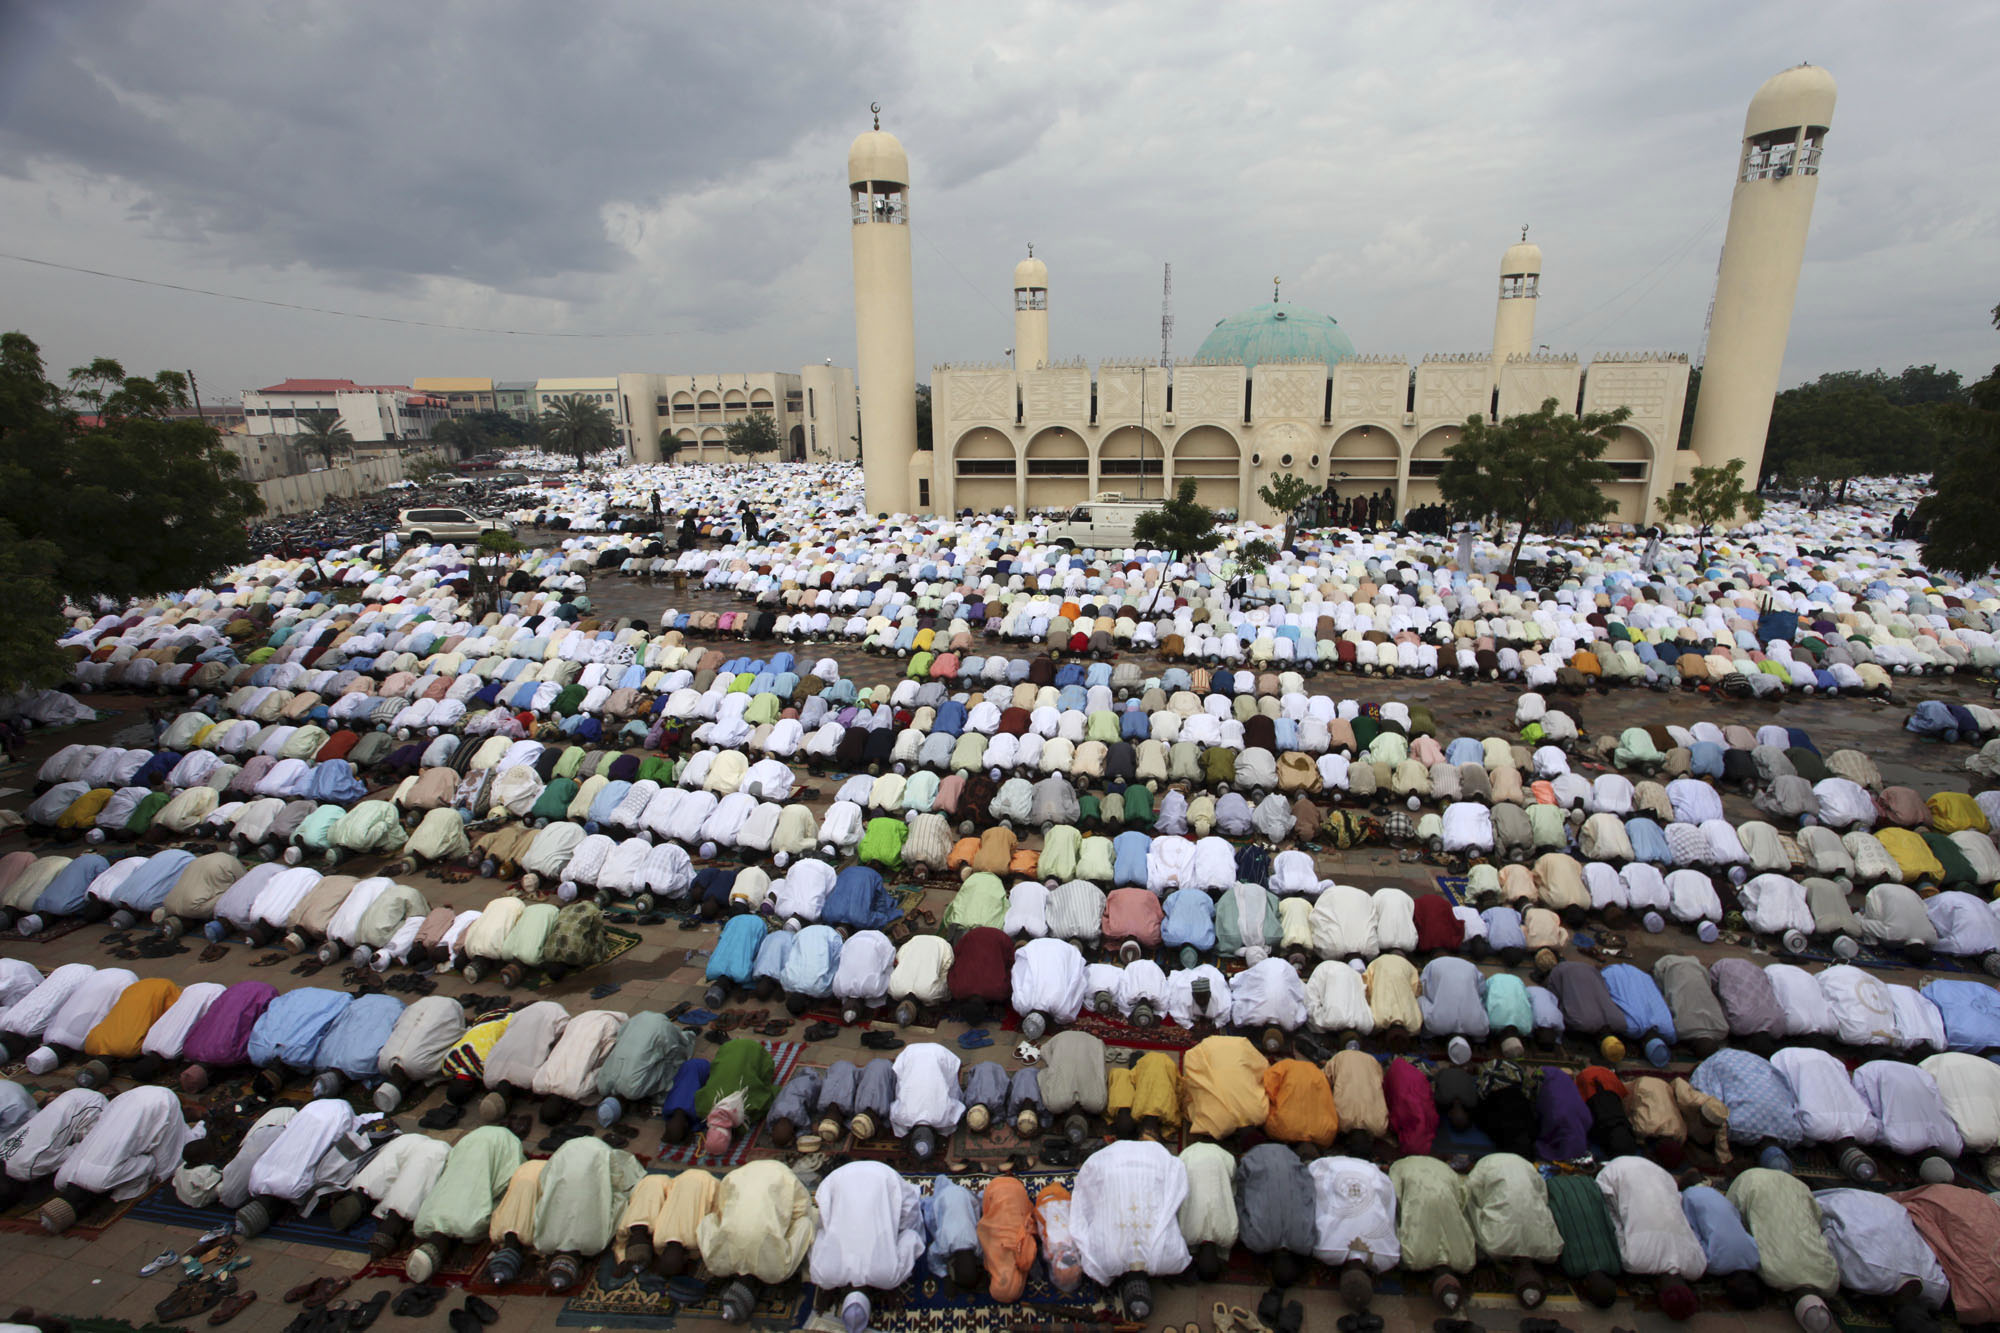 Northern clerics spreading rumors of Buhari's alleged poisoning In Mosques– Umar Tata